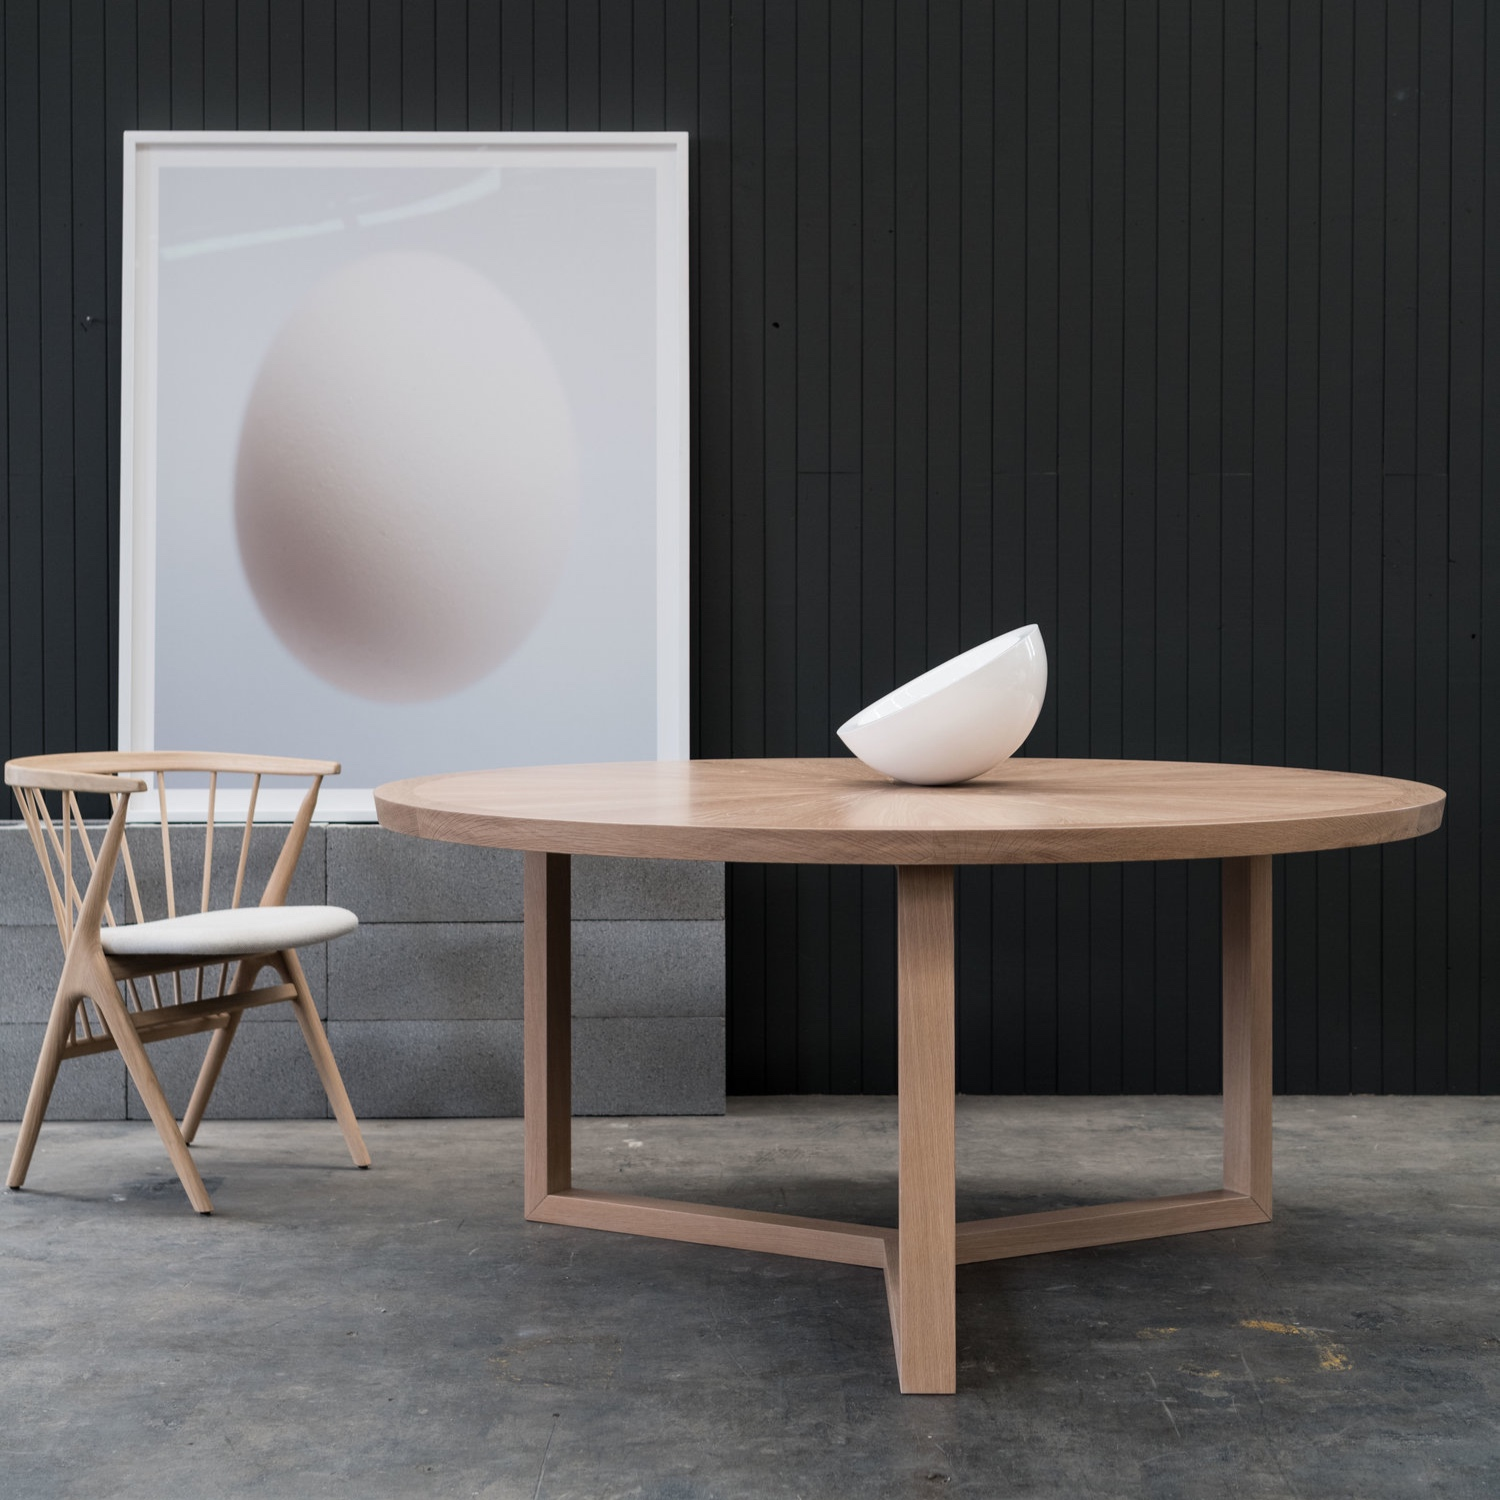 The Radley Table